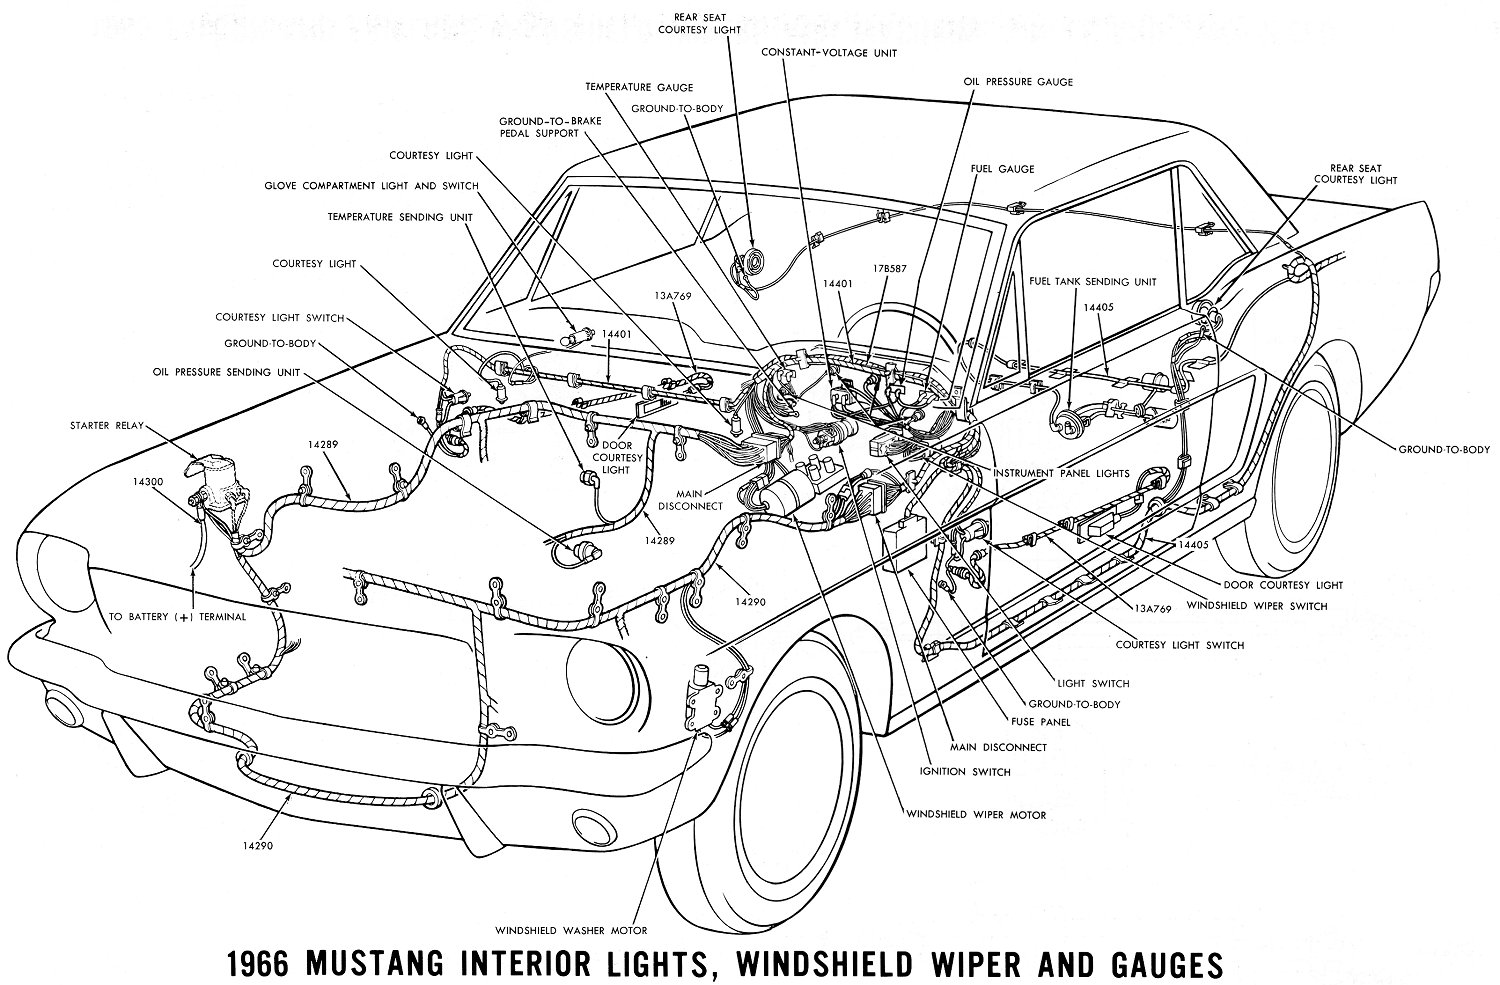 66inter 1966 mustang wiring diagrams average joe restoration 66 mustang engine wiring diagram free at bayanpartner.co